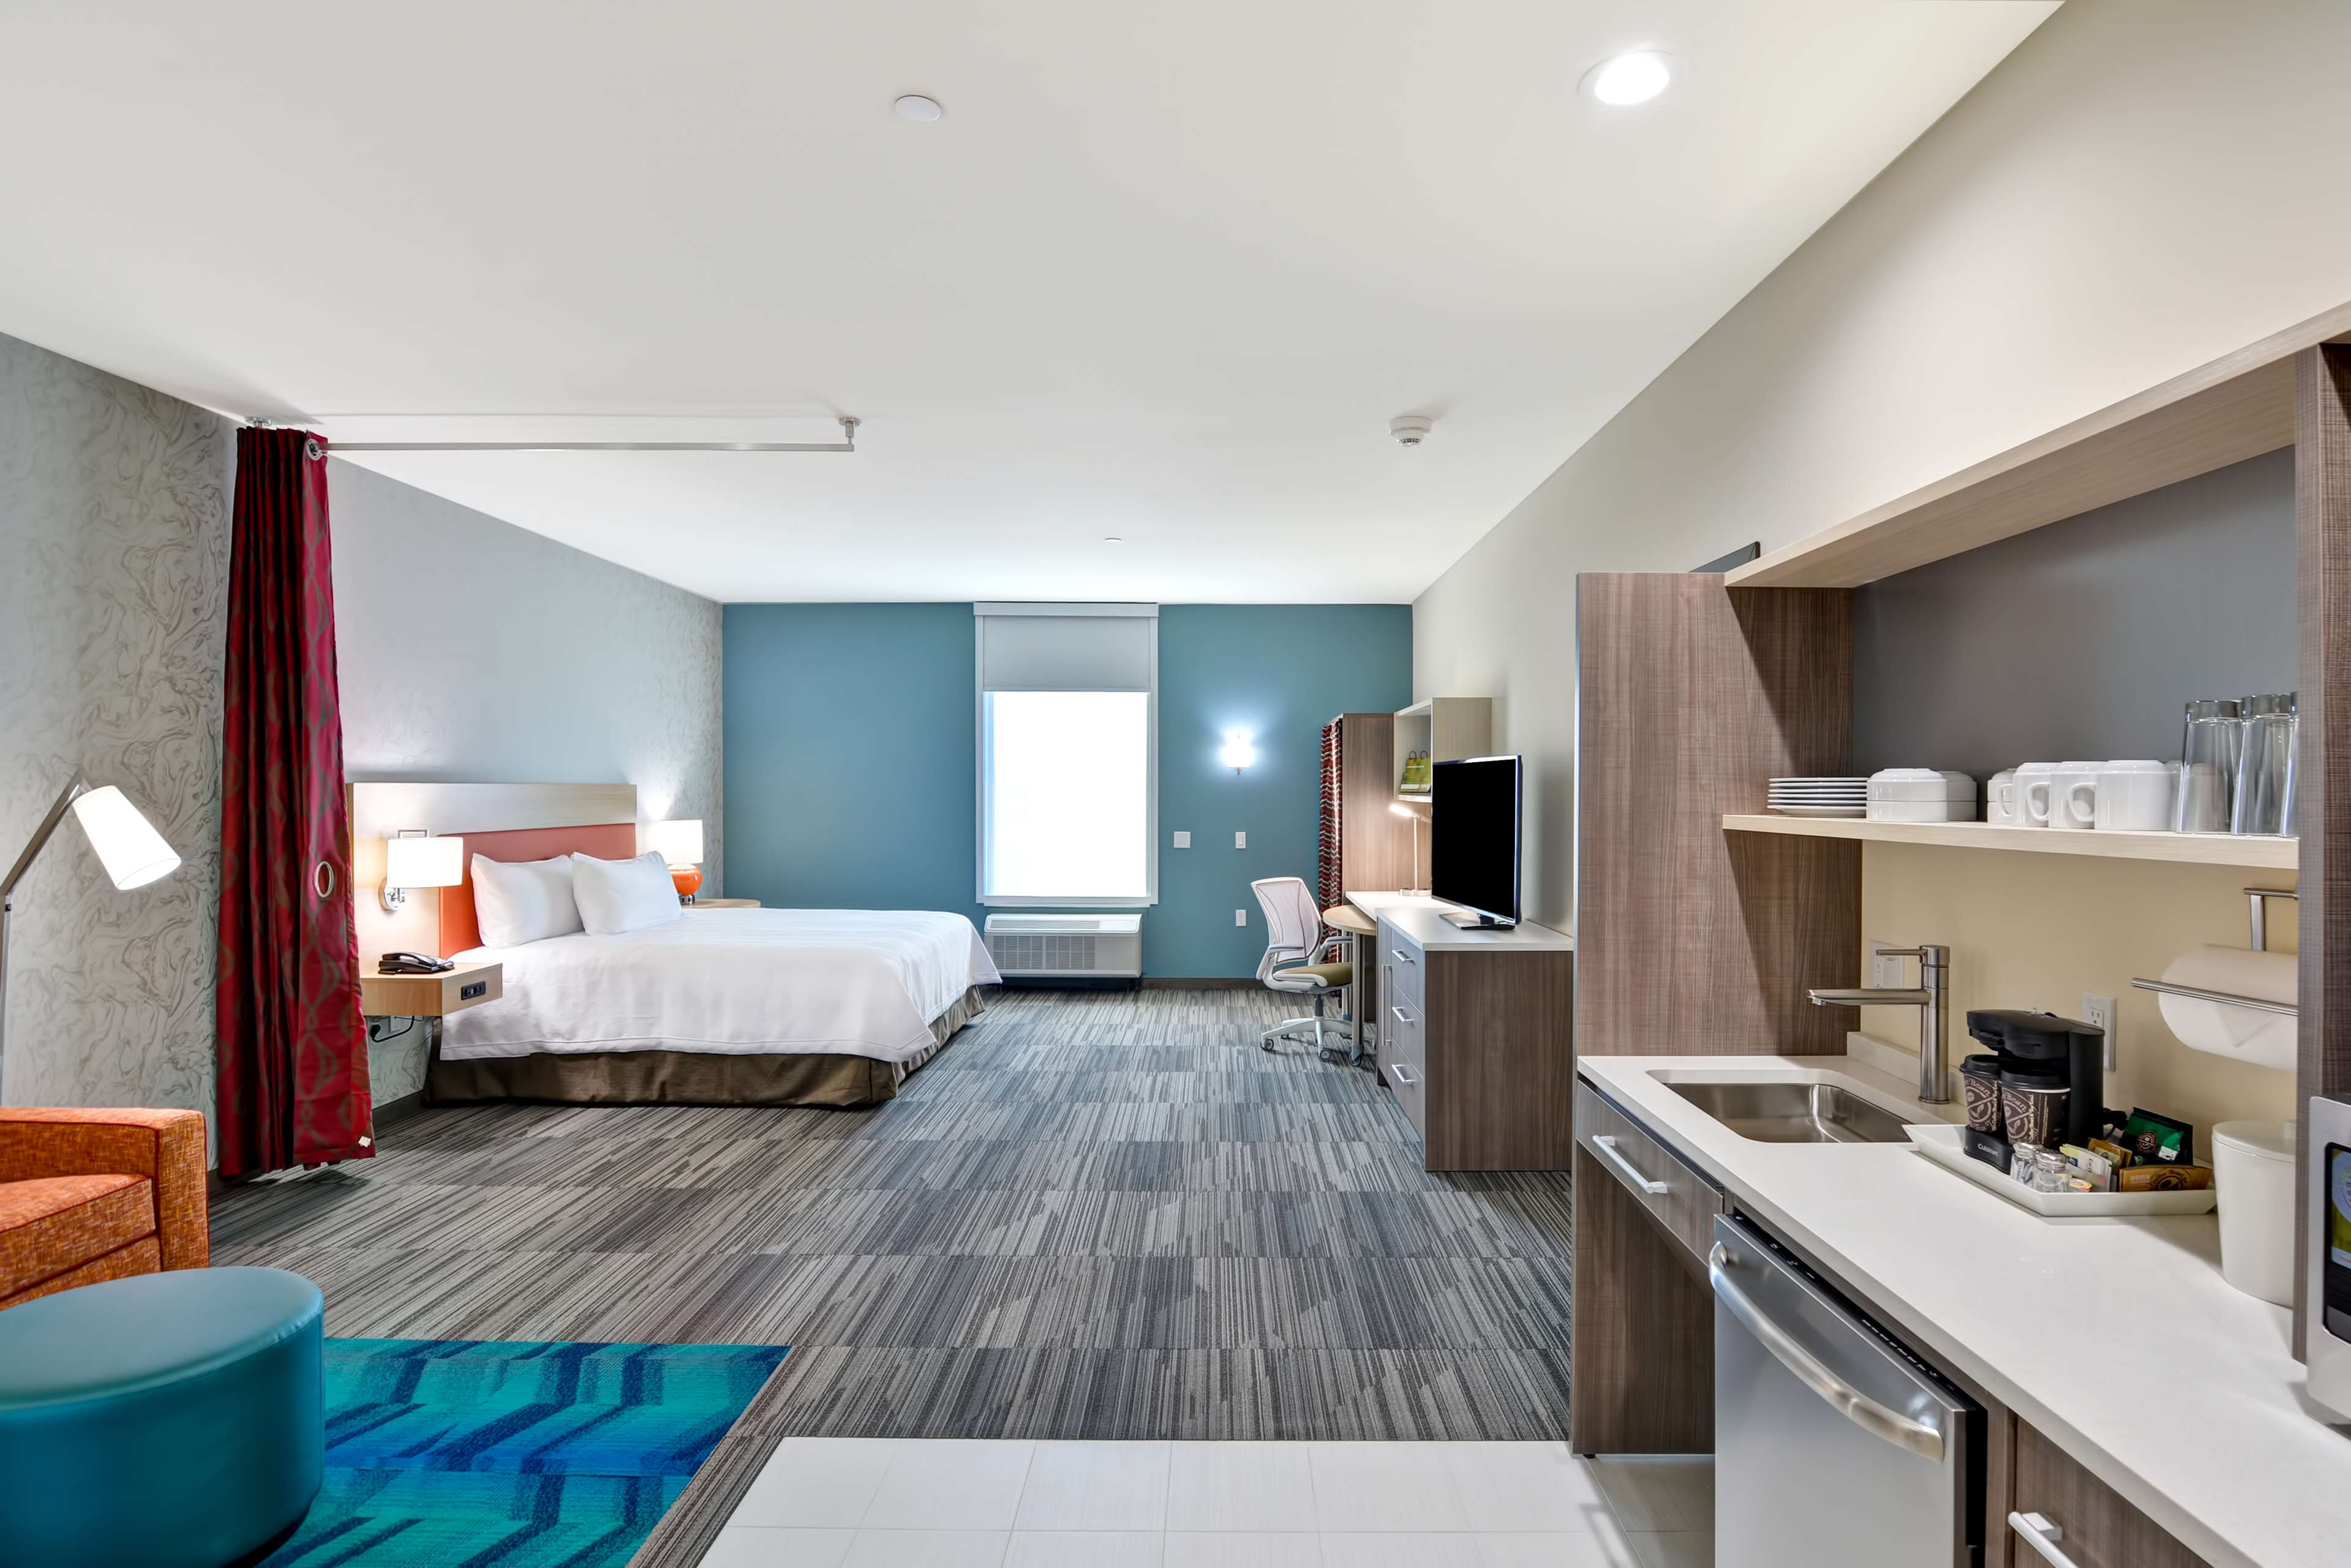 Home2 Suites by Hilton OKC Midwest City Tinker AFB image 17